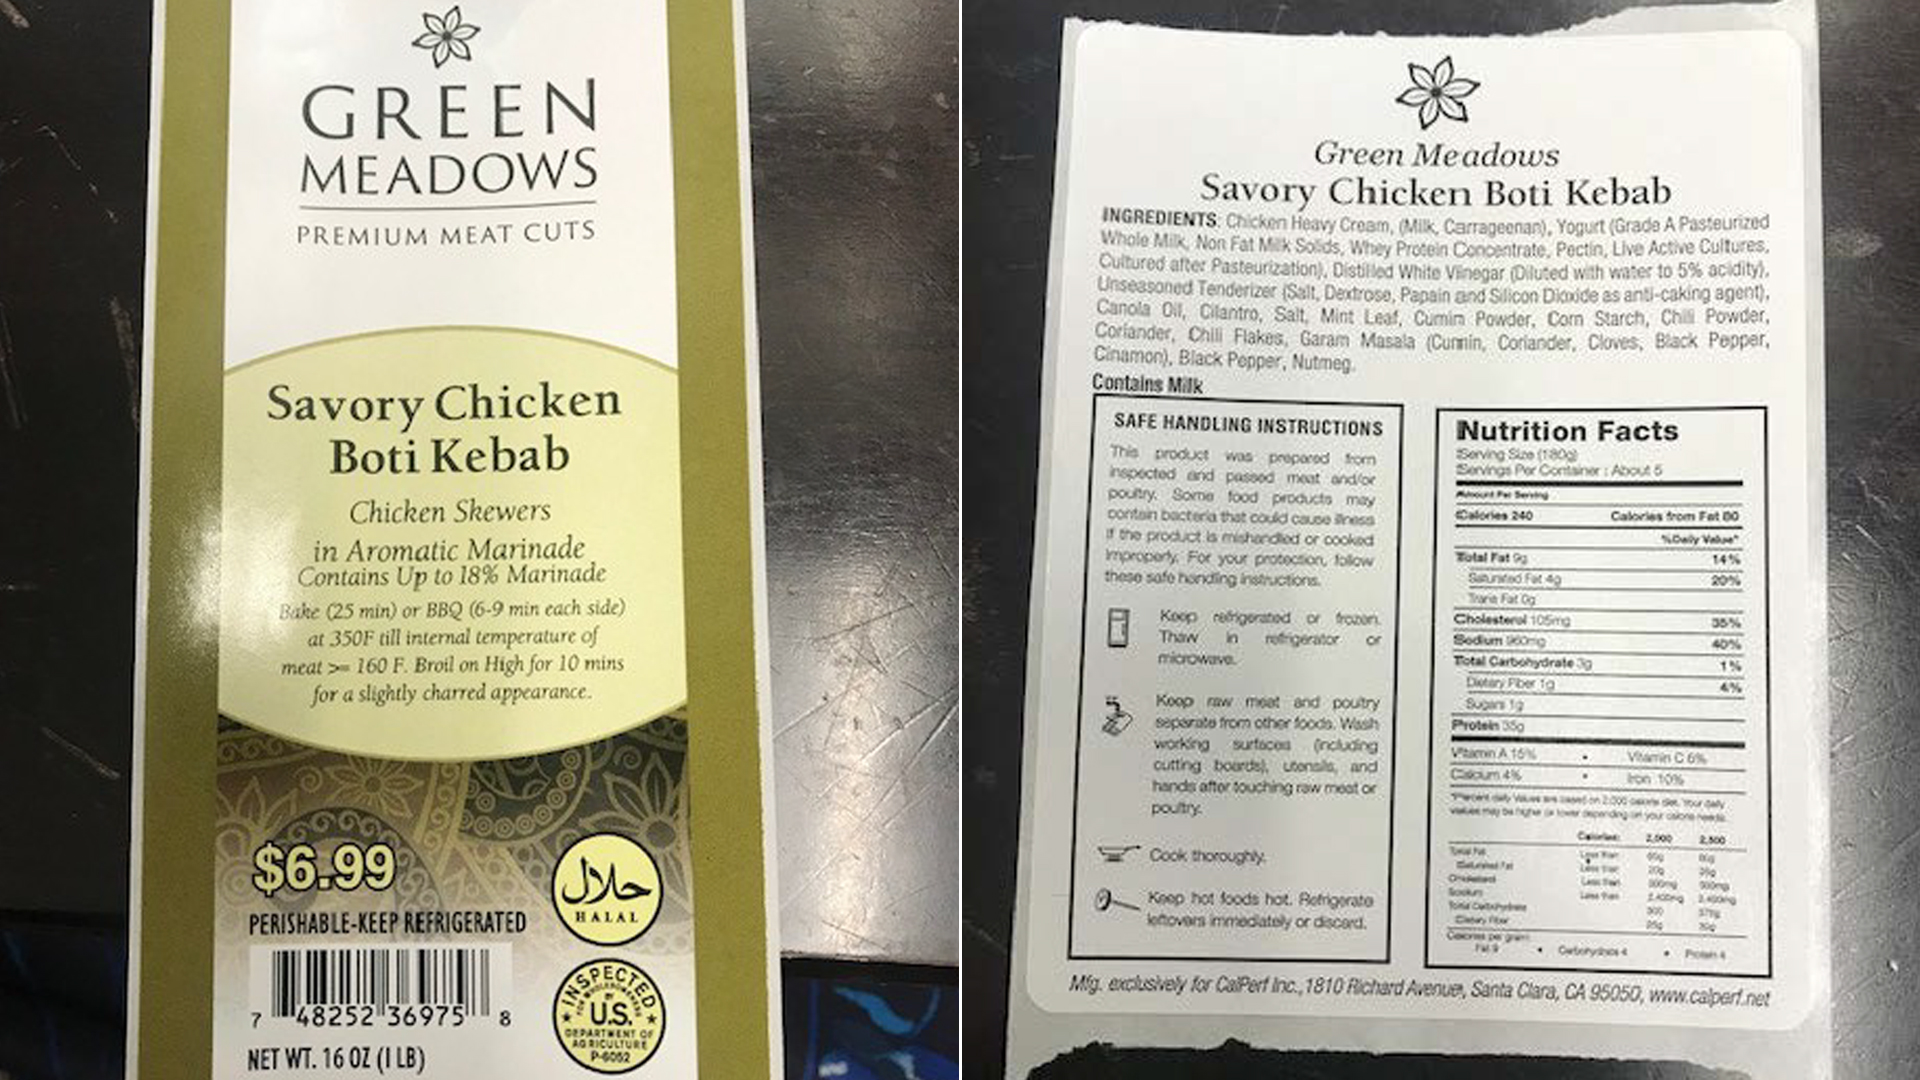 Labels for a recalled Green Meadows-brand chicken product are seen in images released Nov. 13, 2019, by the U.S. Department of Agriculture's Food Safety and Inspection Service.